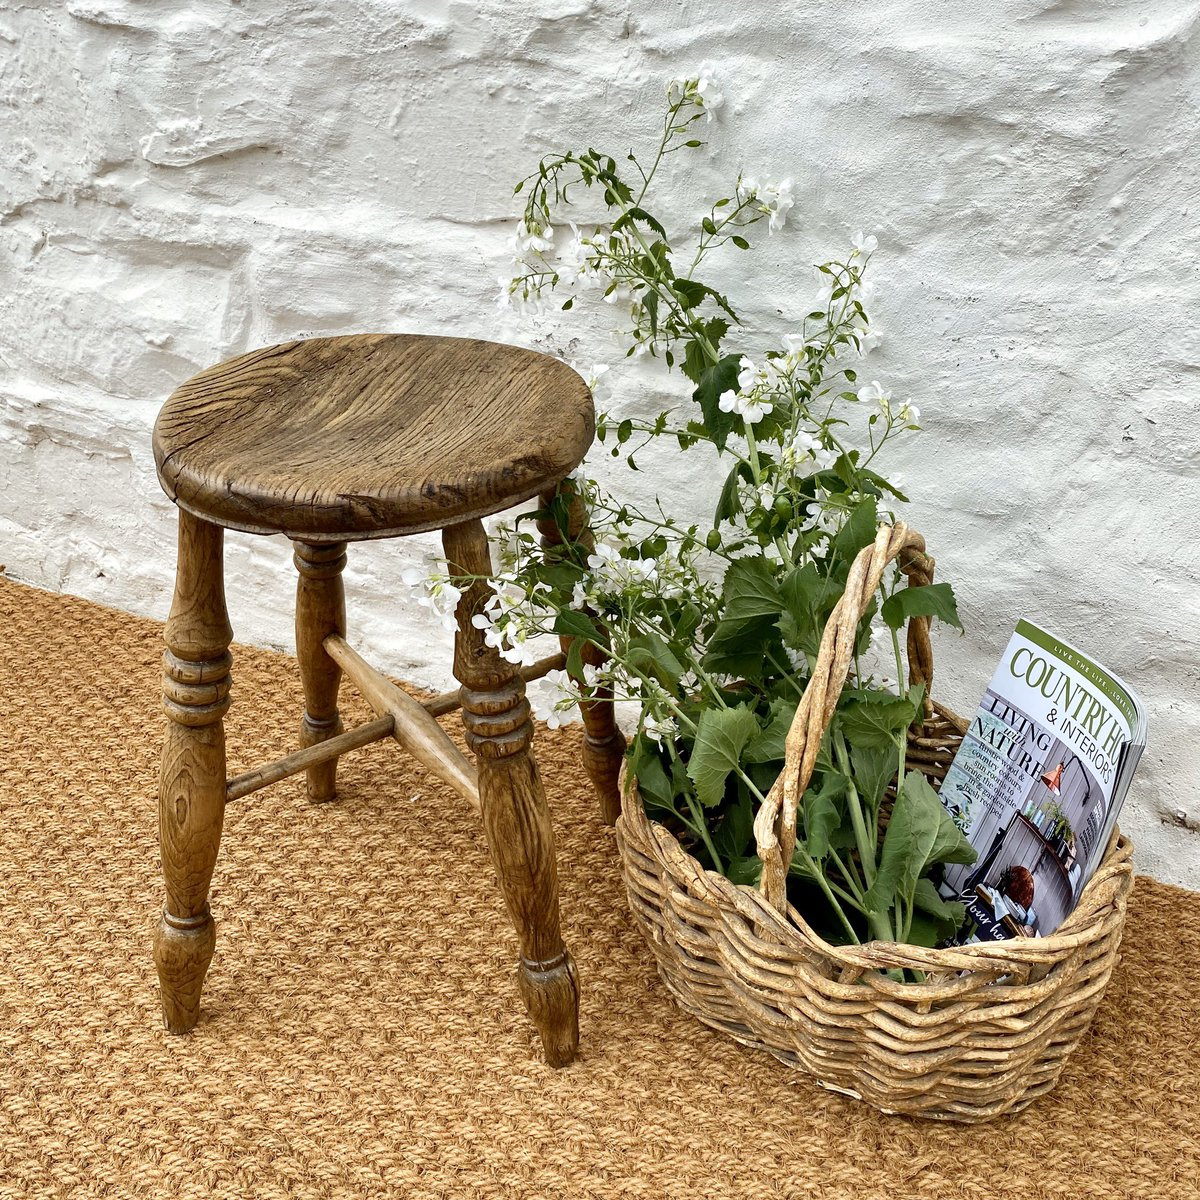 Ar werth / for sale @welshvernacular  A beautiful, charming and ever so characterful elm and ash naturally weathered stool £95 inc UK posting.  #welshvernacularantiques #welshvernacular #stool #elm #ash #weatheredandwonderful #weatheredwood #modernrustic #modernrusticdecorpic.twitter.com/ghs6xtFYUA